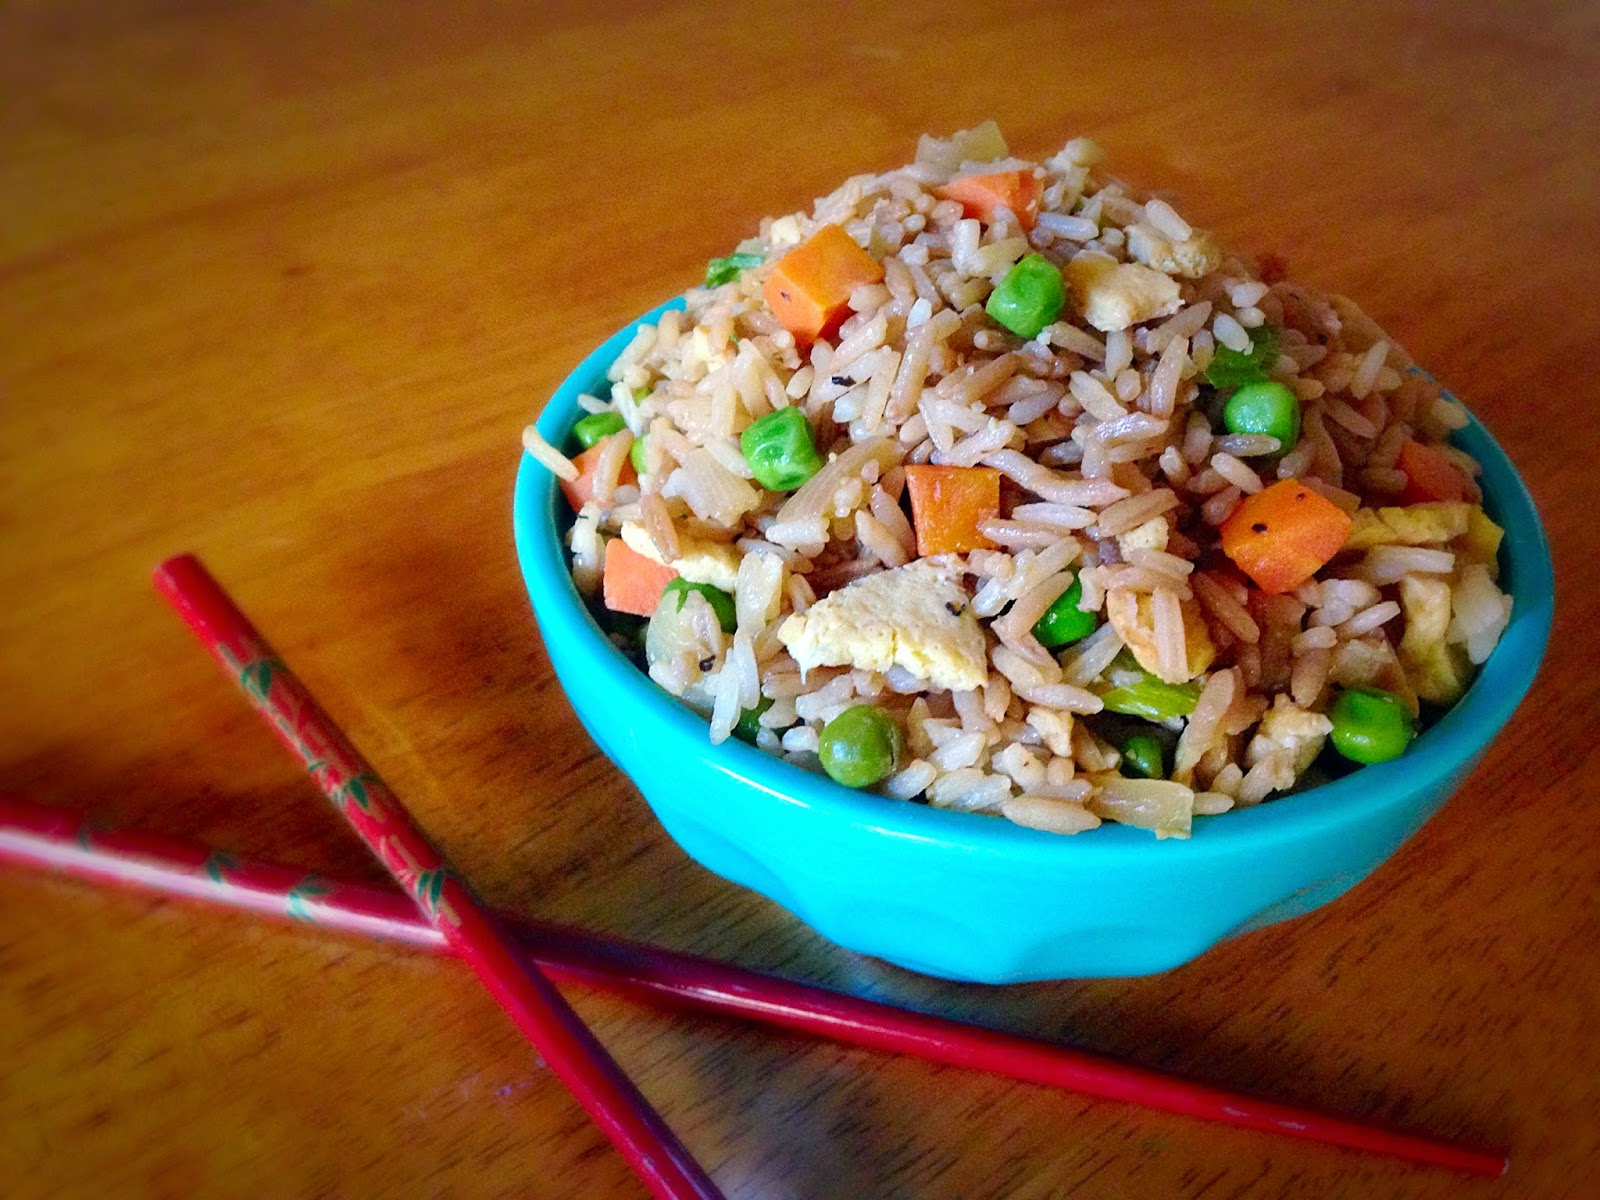 The tall girl cooks fried rice ive tried a lot of fried rice recipes over the years trying to find one that is a copycat for the fried rice you get from a place like panda express or ccuart Images